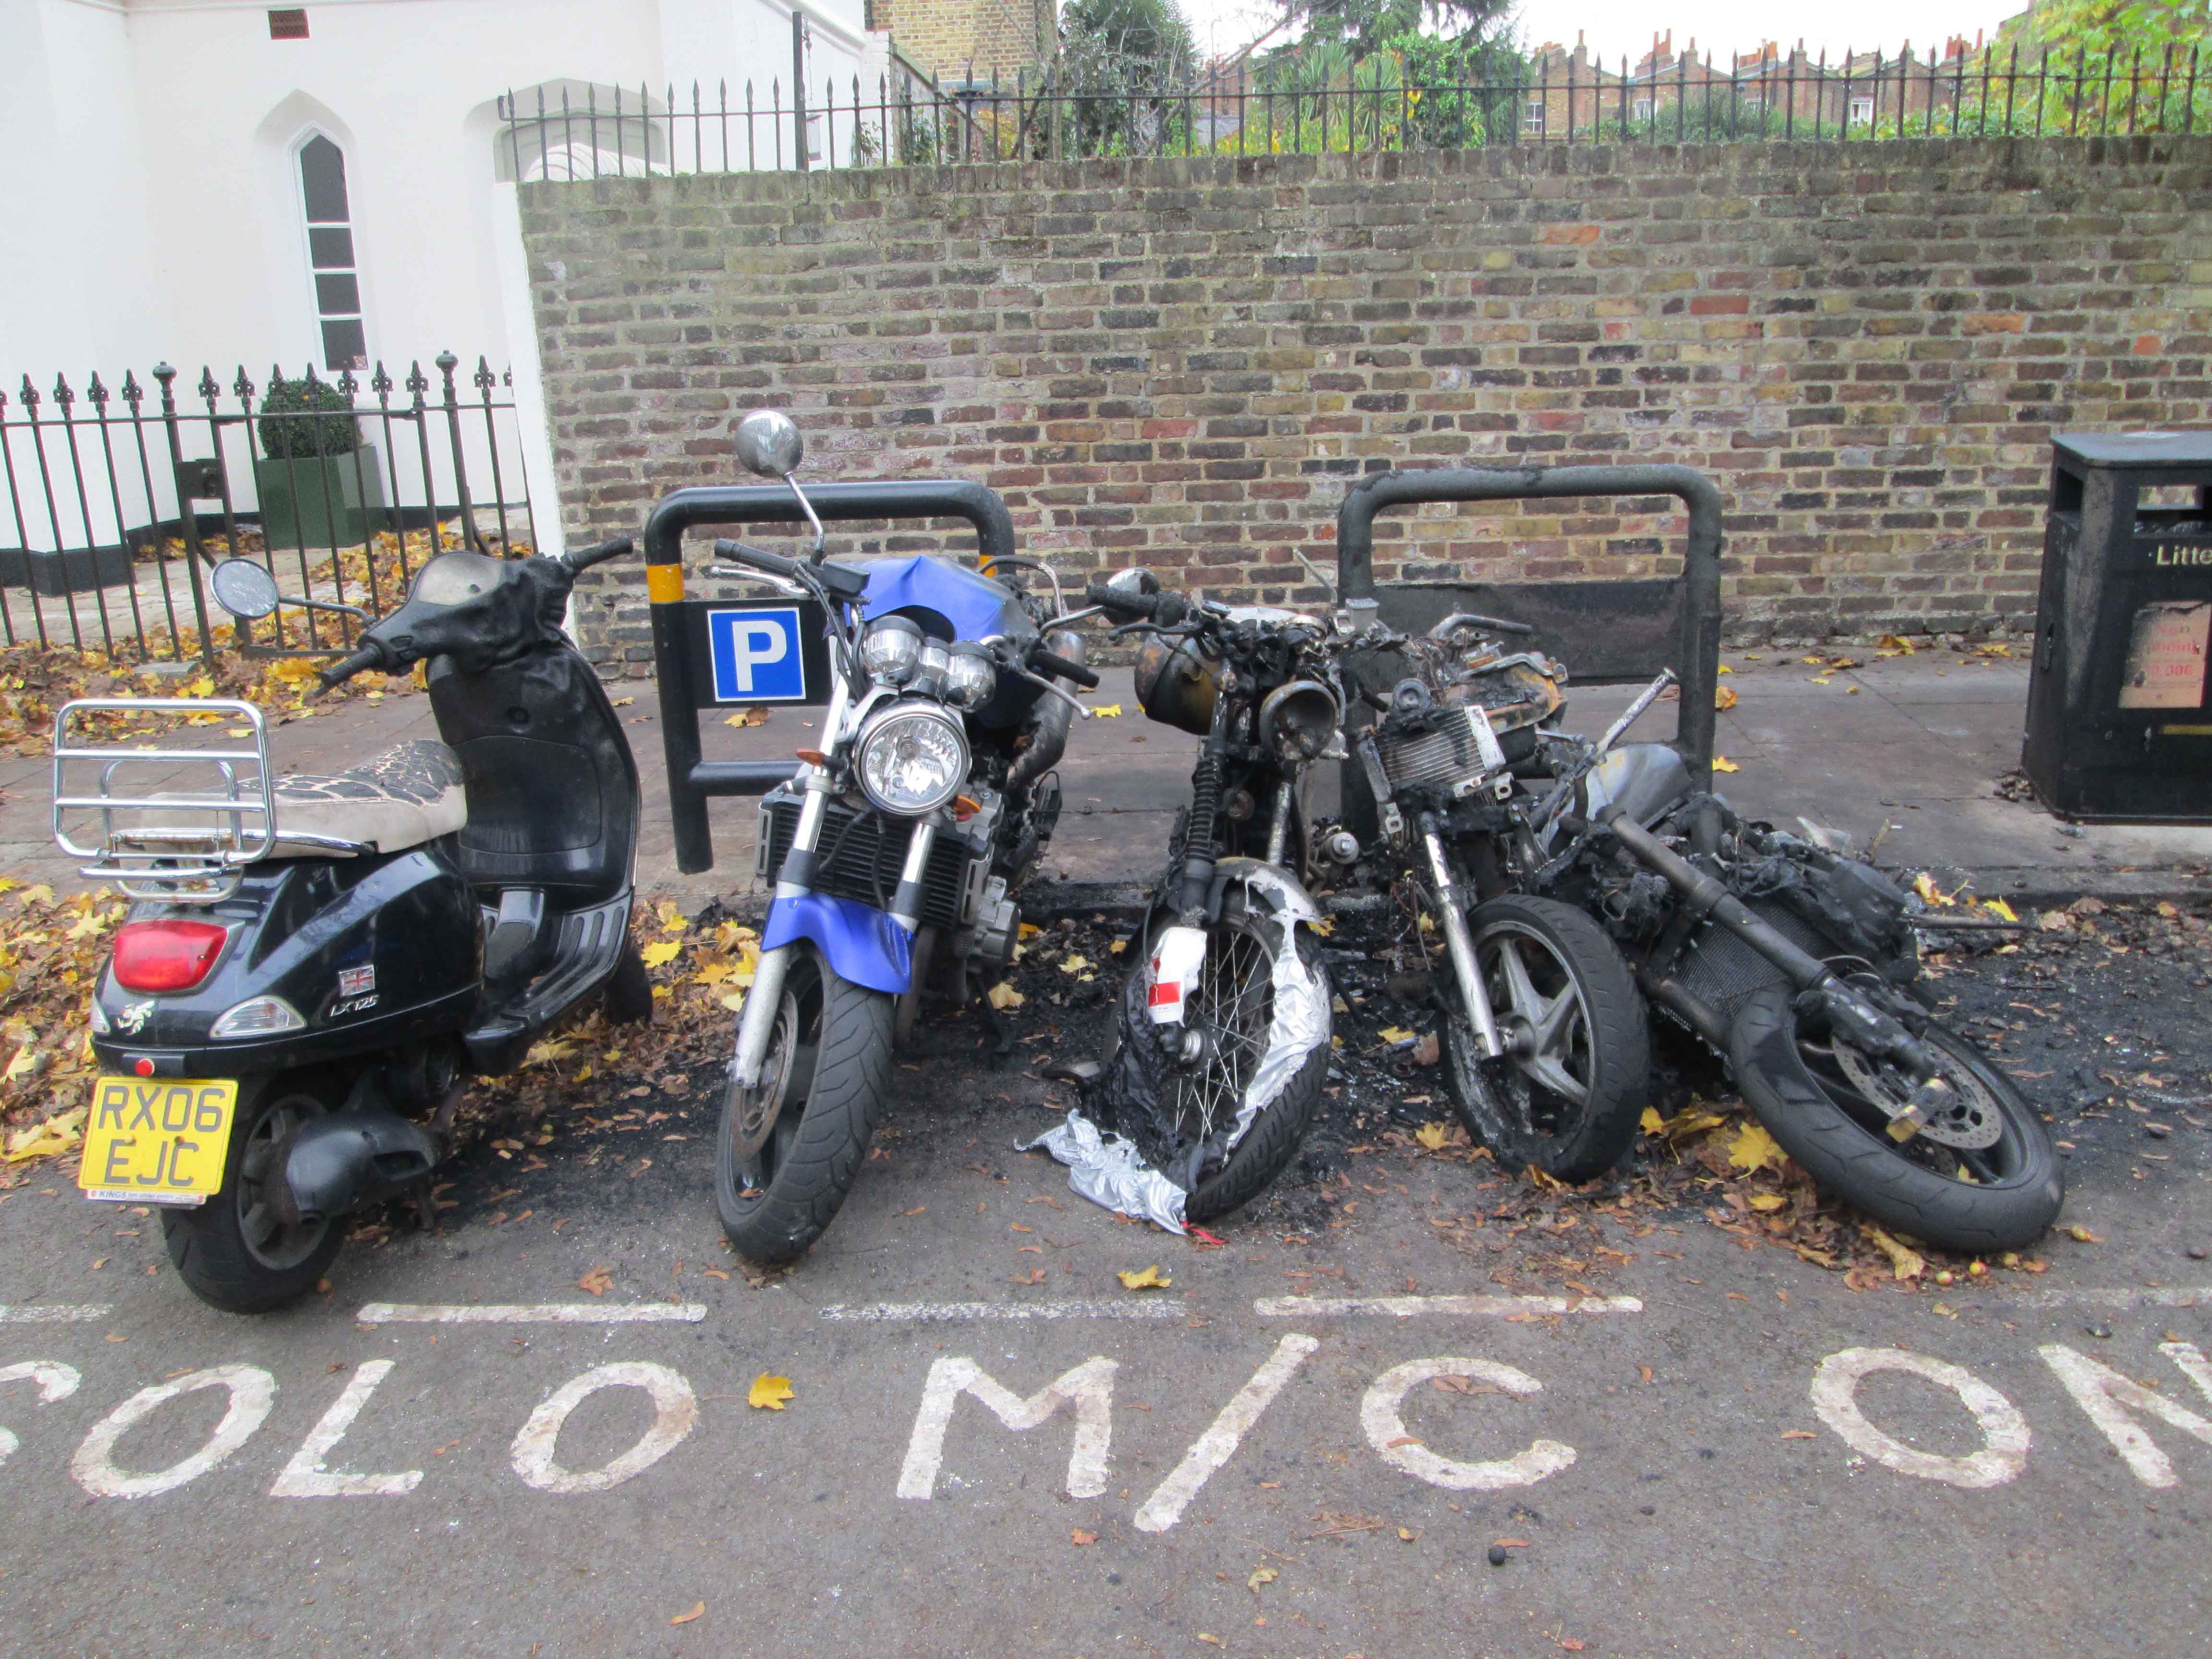 Motorbike Arson Cloudesley St